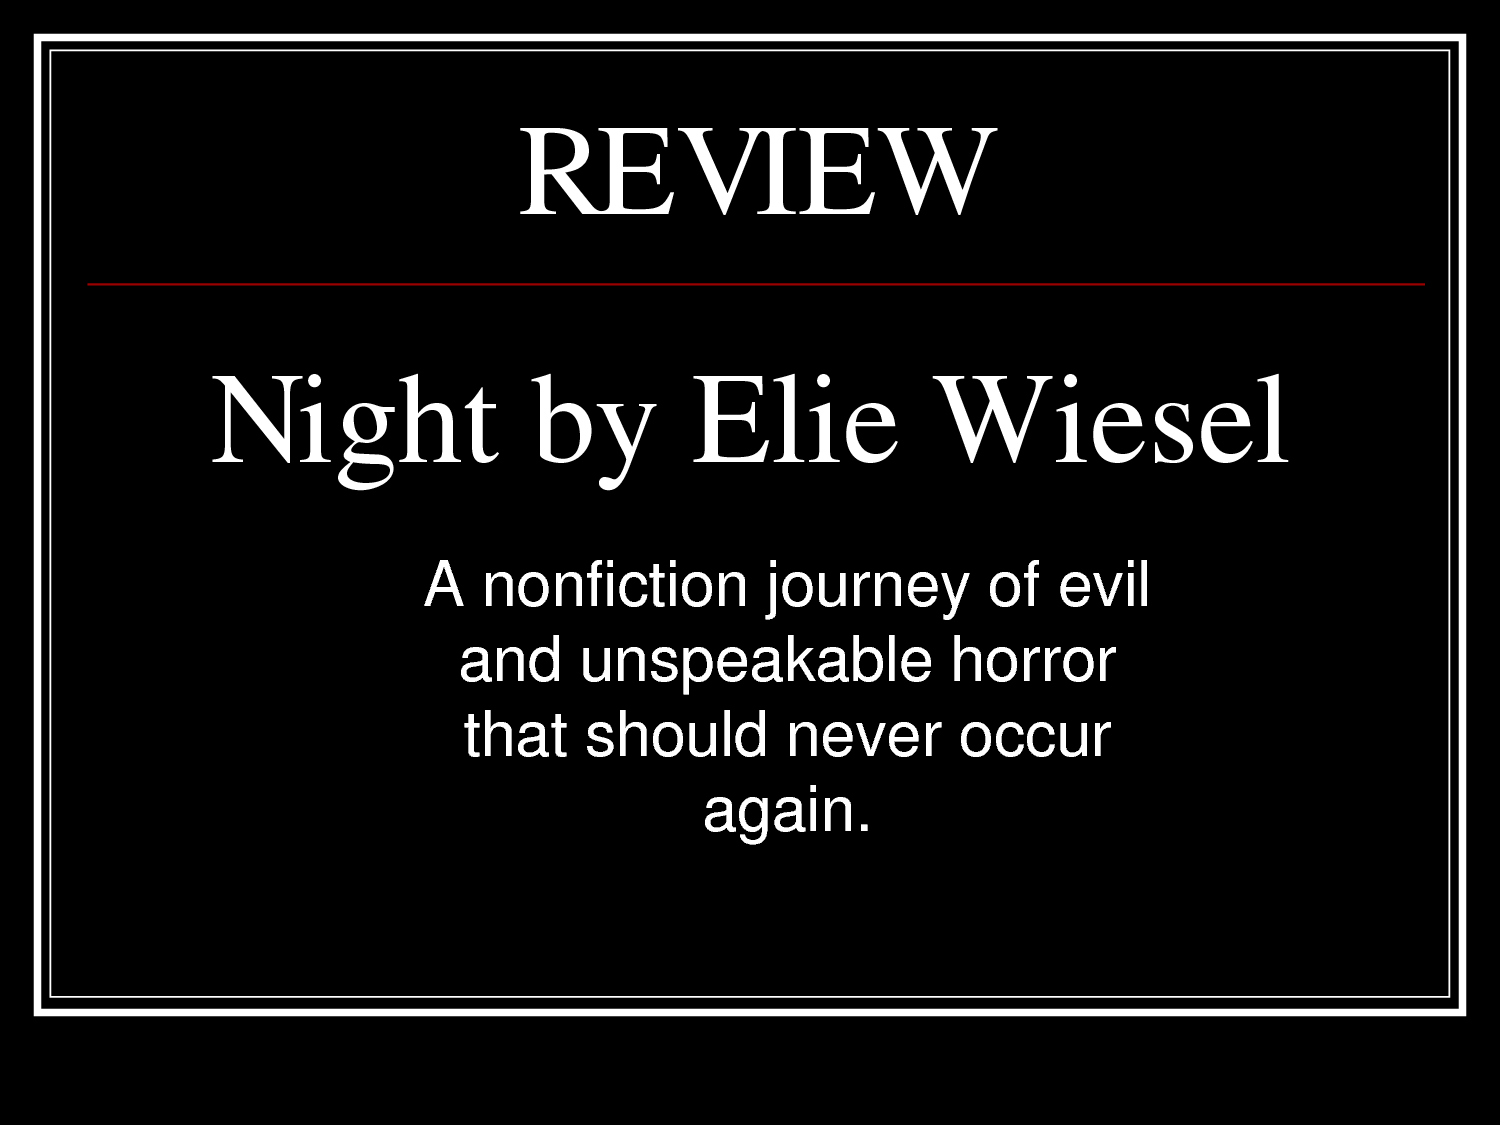 reflections on night by elie wiesel